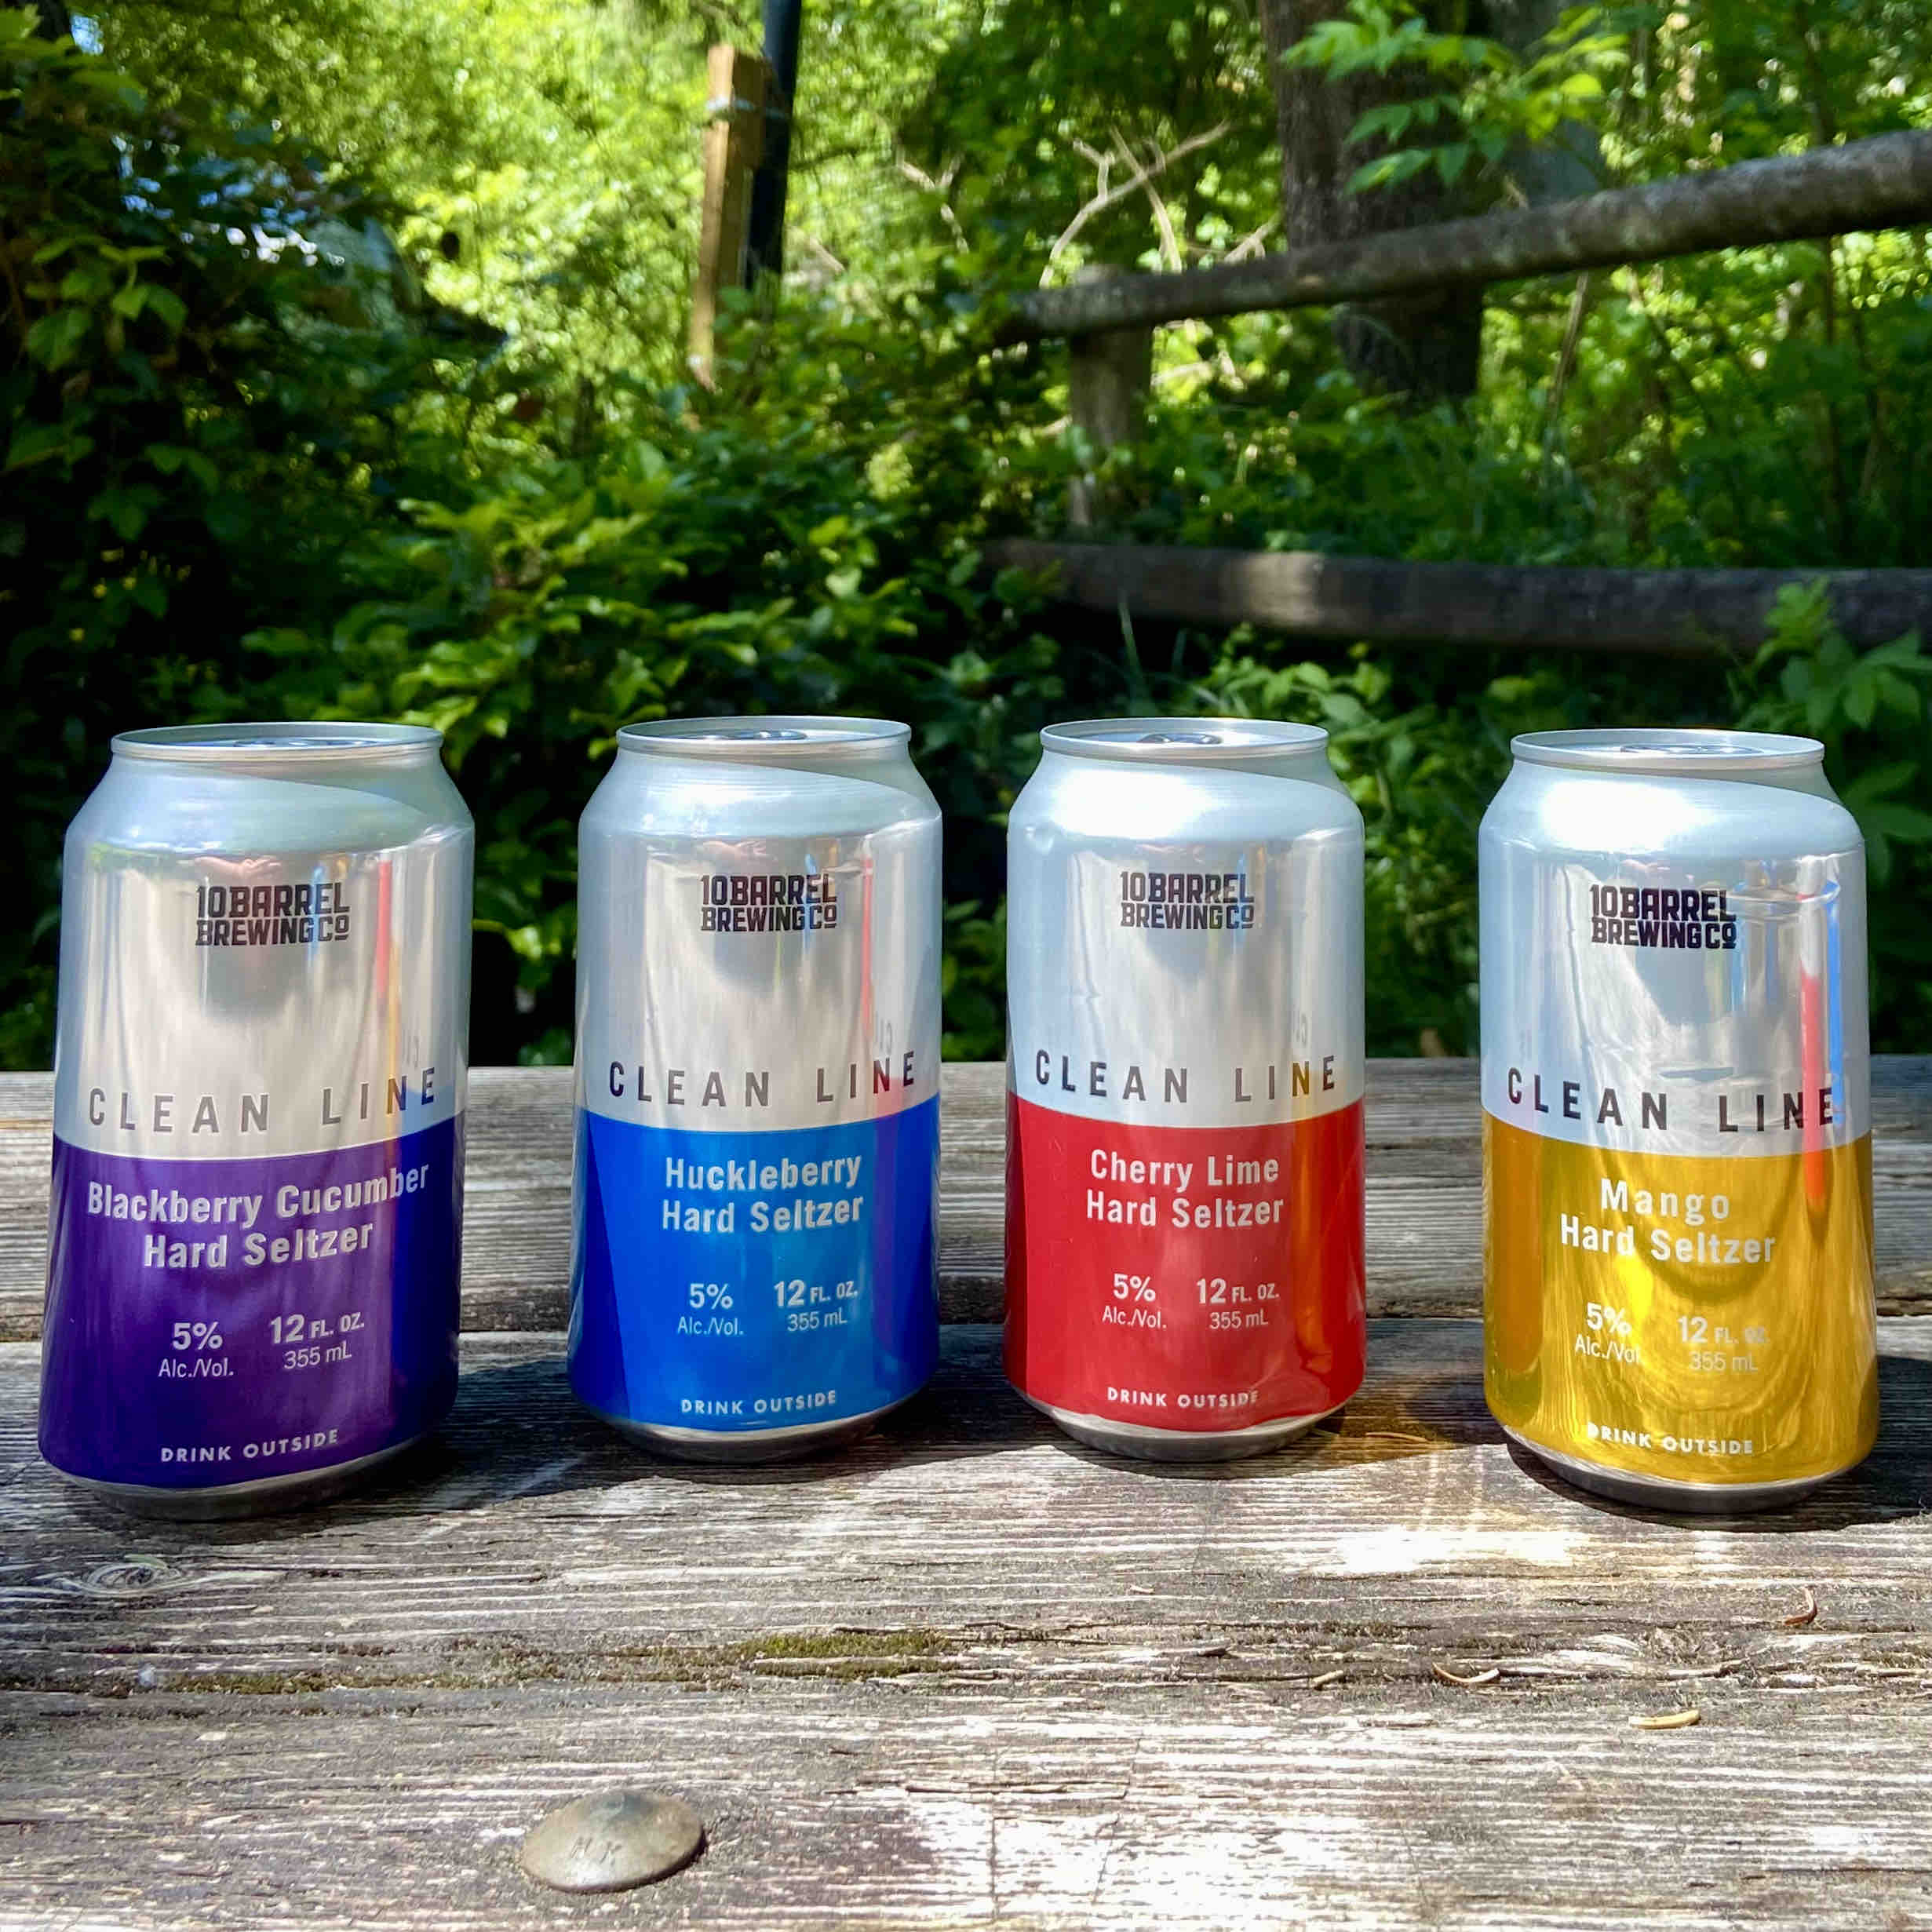 Clean Line Hard Seltzer Variety Pack from 10 Barrel Brewing Co. features four flavors.